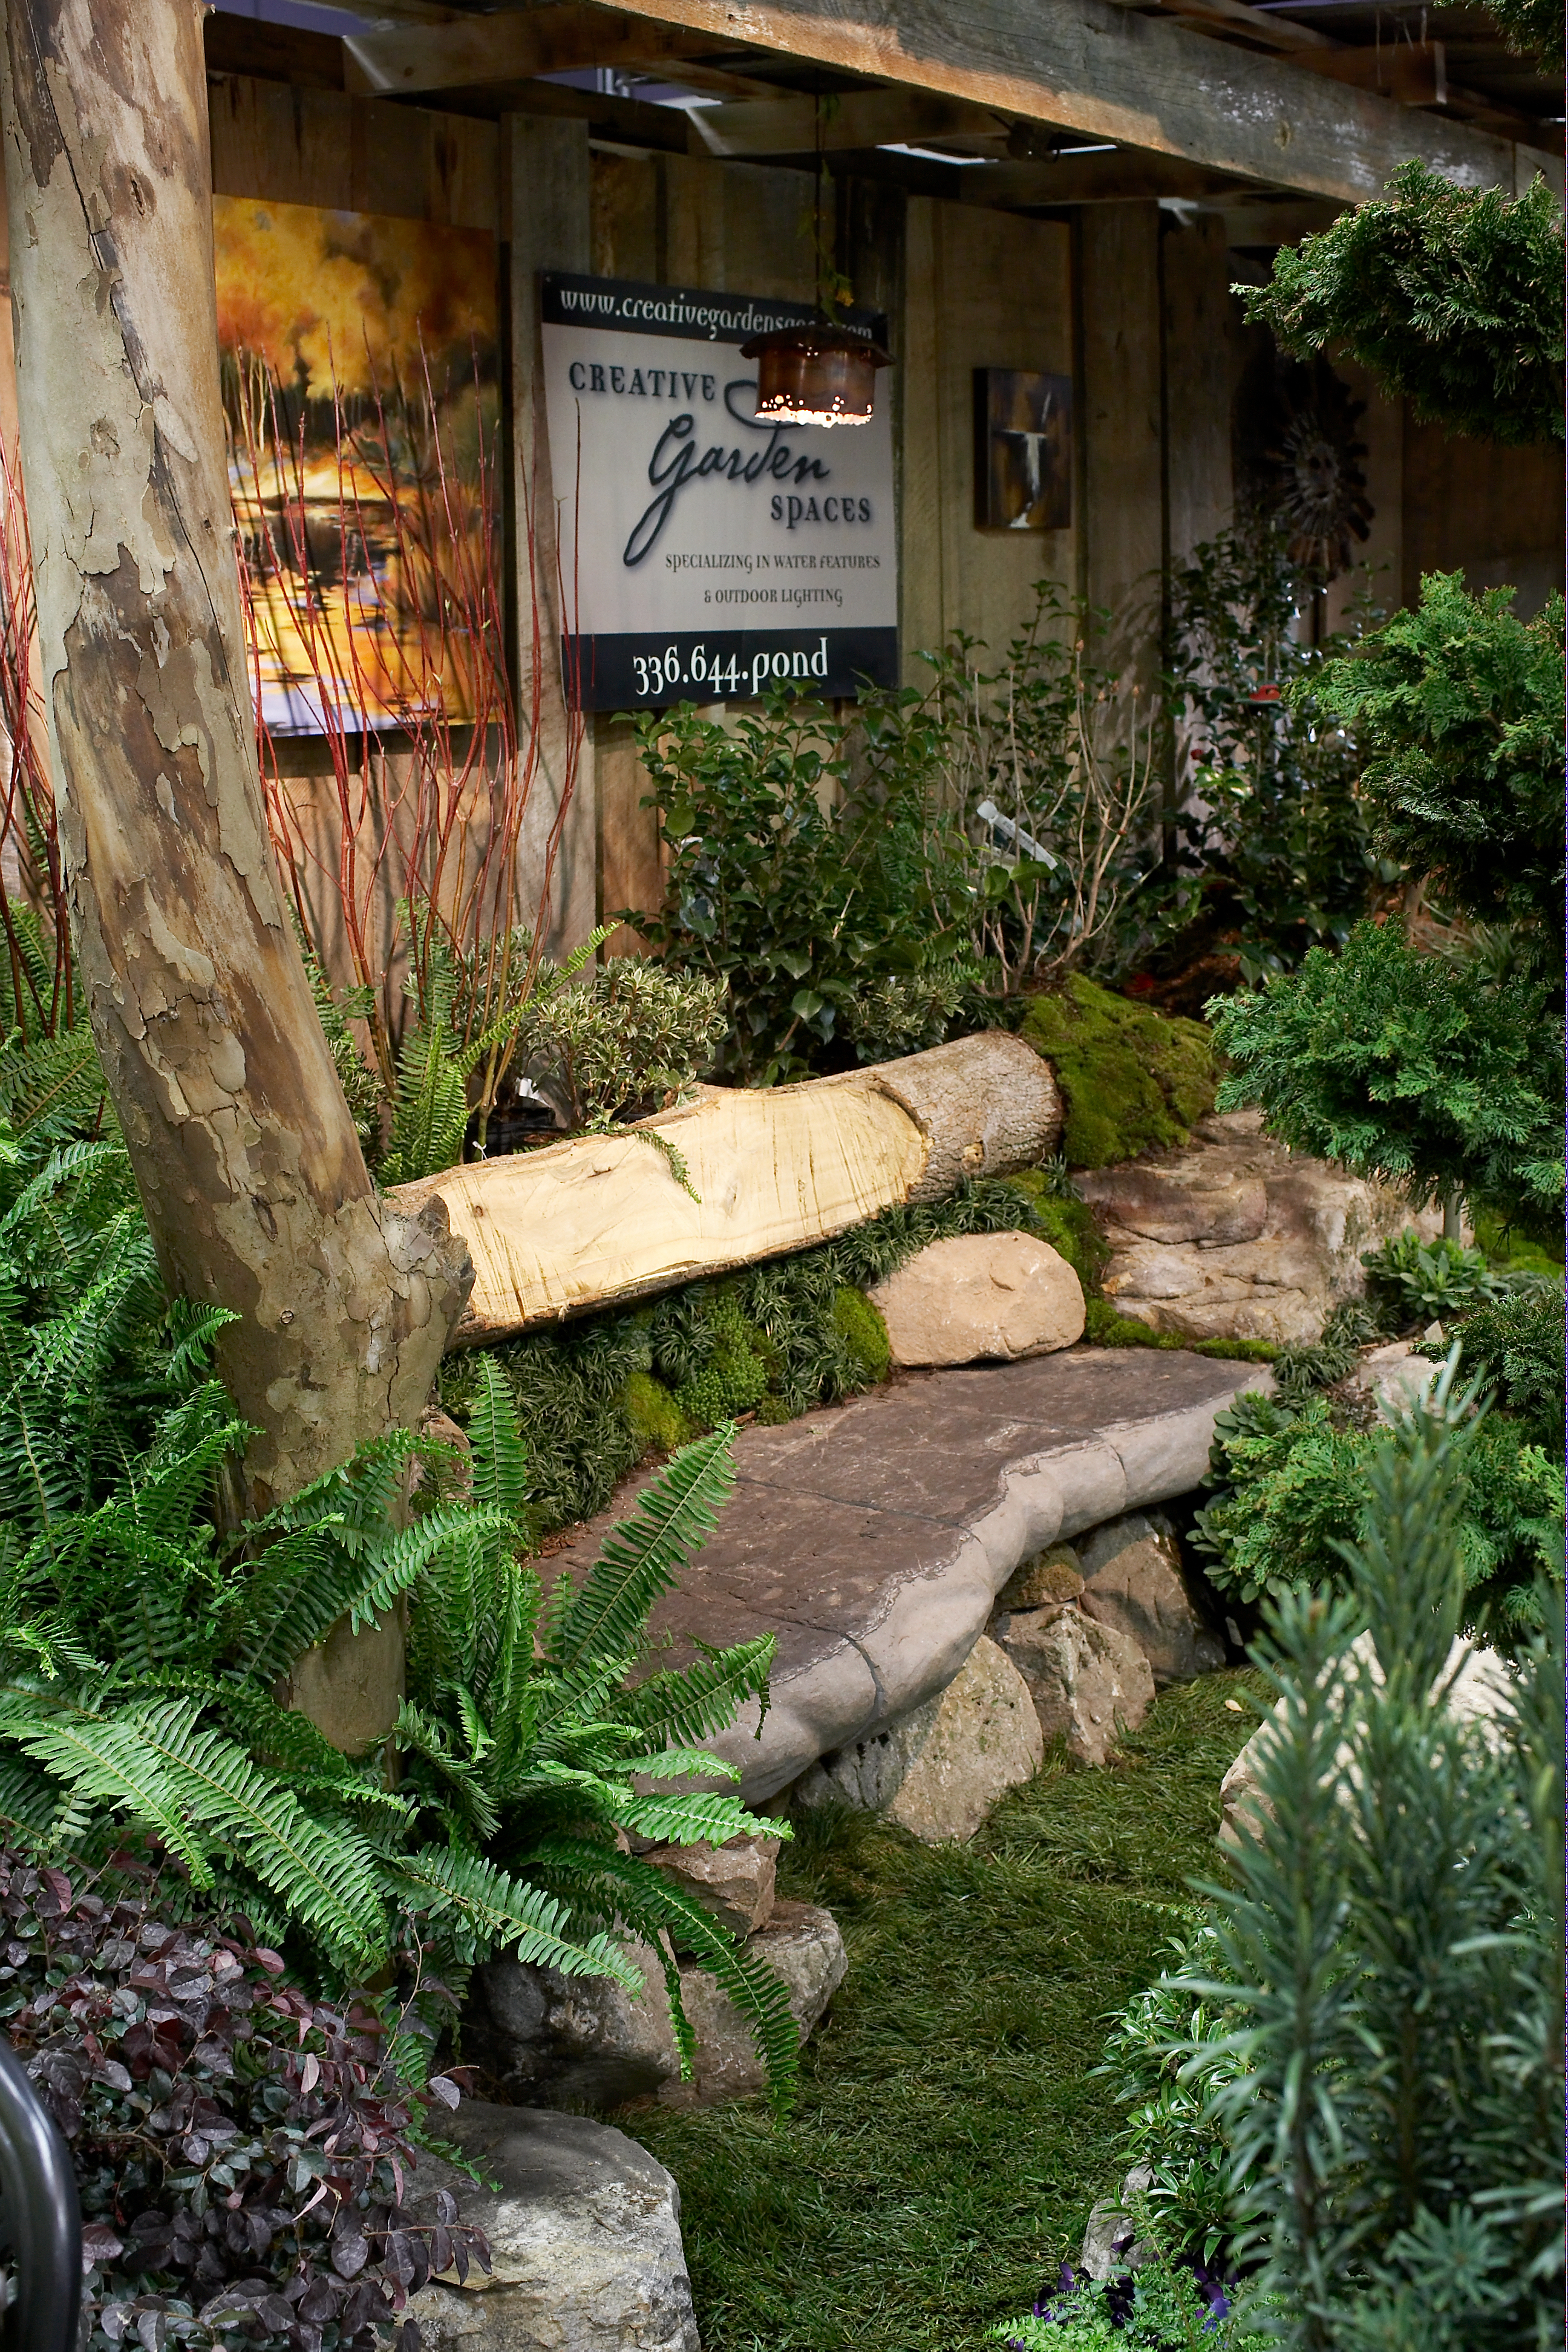 Creative Garden Spaces, Inc, Southern Ideal Home Show, custom stone bench, stone masonry, landscape design, woodworking